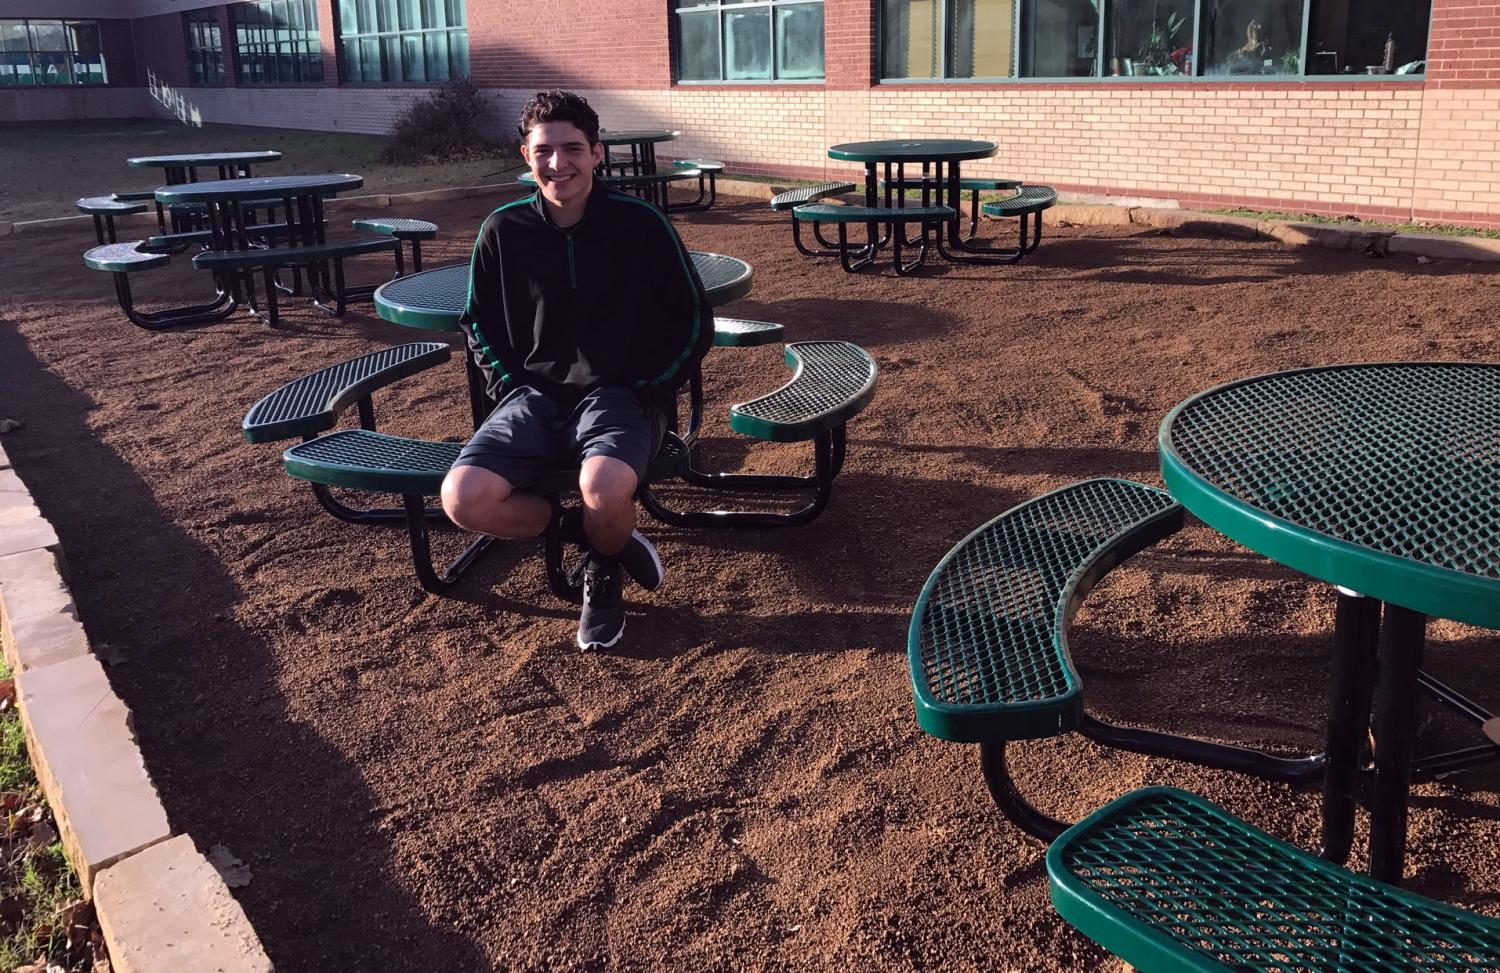 After+completing+the+outdoor+classroom+in+the+center+courtyard%2C+senior+Luke+Guajardo+tries+out+the+benches.+As+his+Eagle+Scout+project%2C+Guajardo+partnered+with+Environmental+Science+teacher+Tina+Vick%2C+who+had+the+the+vision+to+create+an+alternate+learning+environment+for+all+courses+to+use.